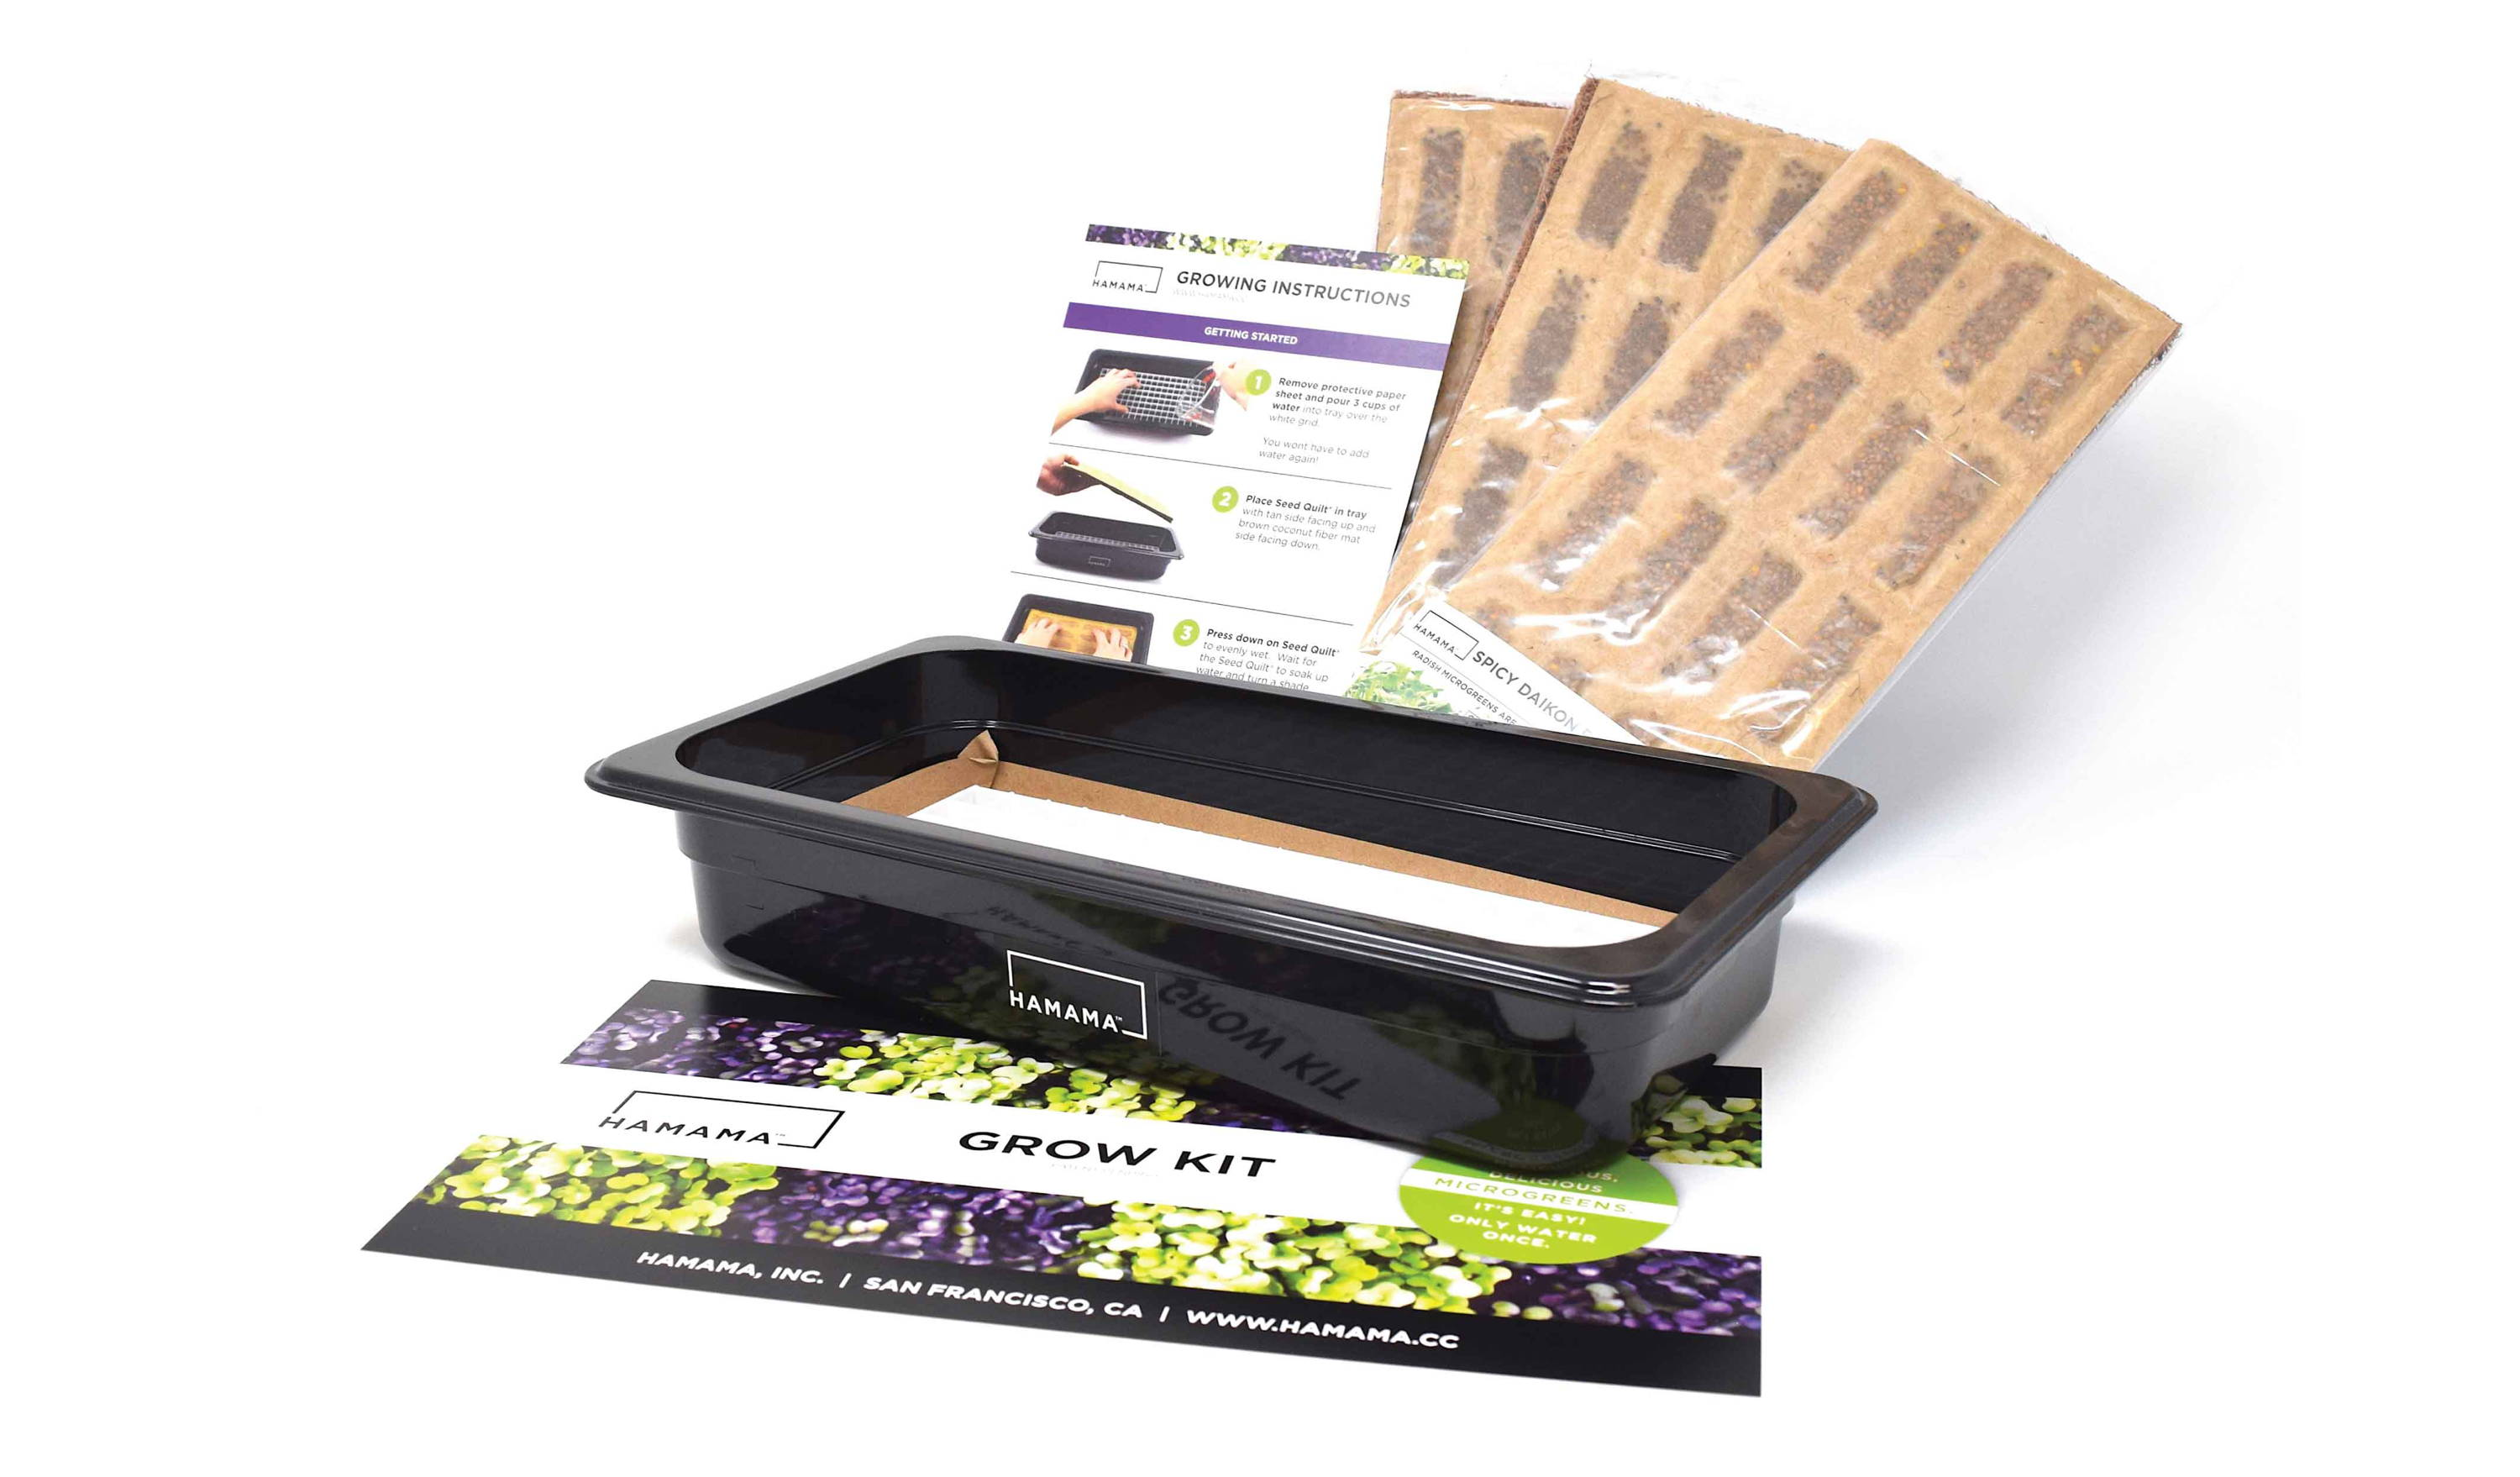 Grow Kit for growing microgreens at home year round.  Includes grow tray, instructions, and three Seed Quilts.